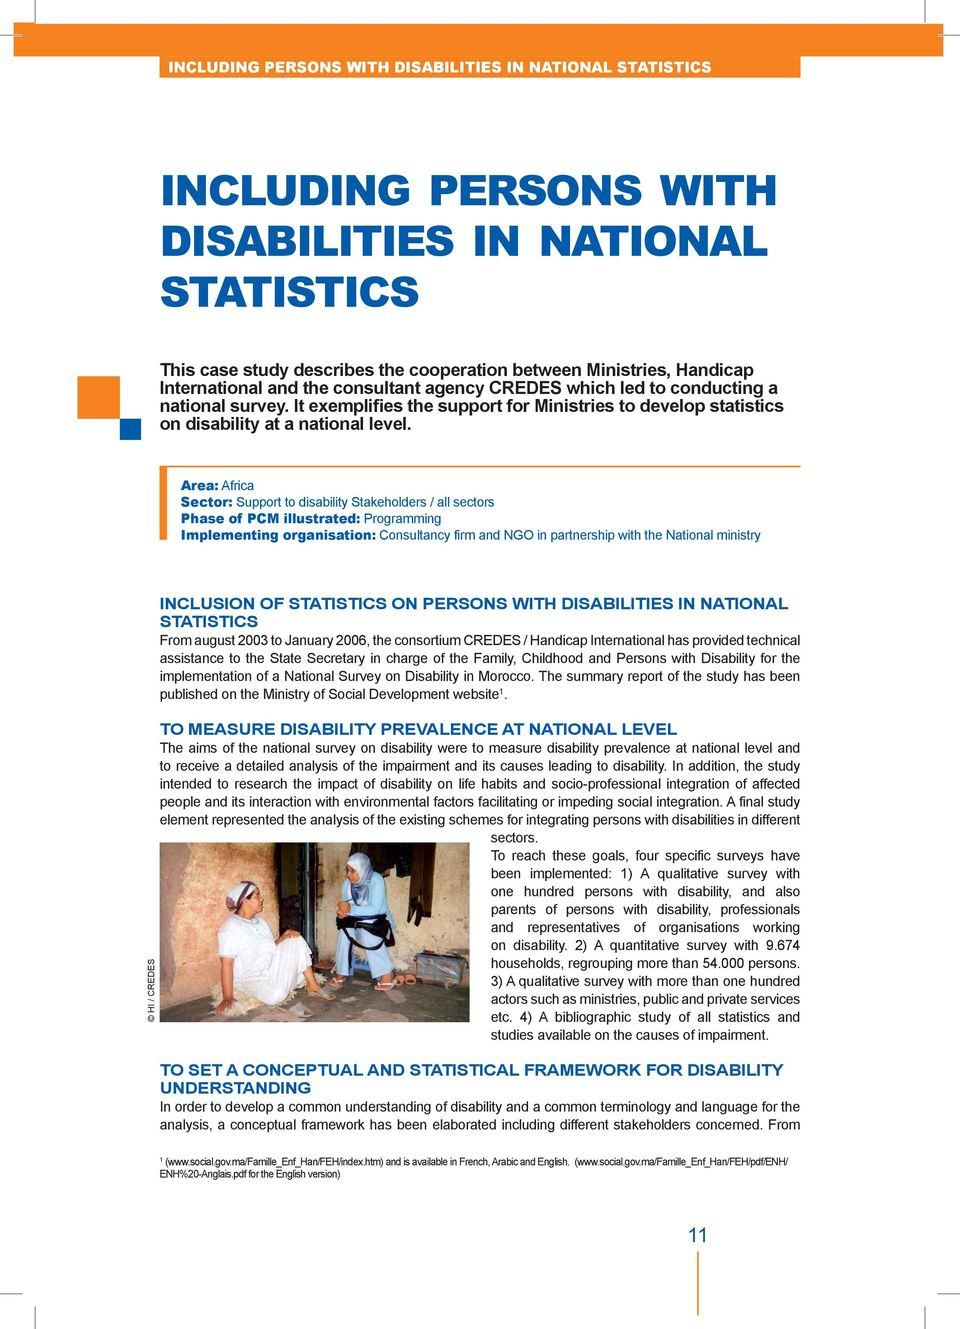 Area: Africa Sector: Support to disability Stakeholders / all sectors Phase of PCM illustrated: Programming Implementing organisation: Consultancy firm and NGO in partnership with the National